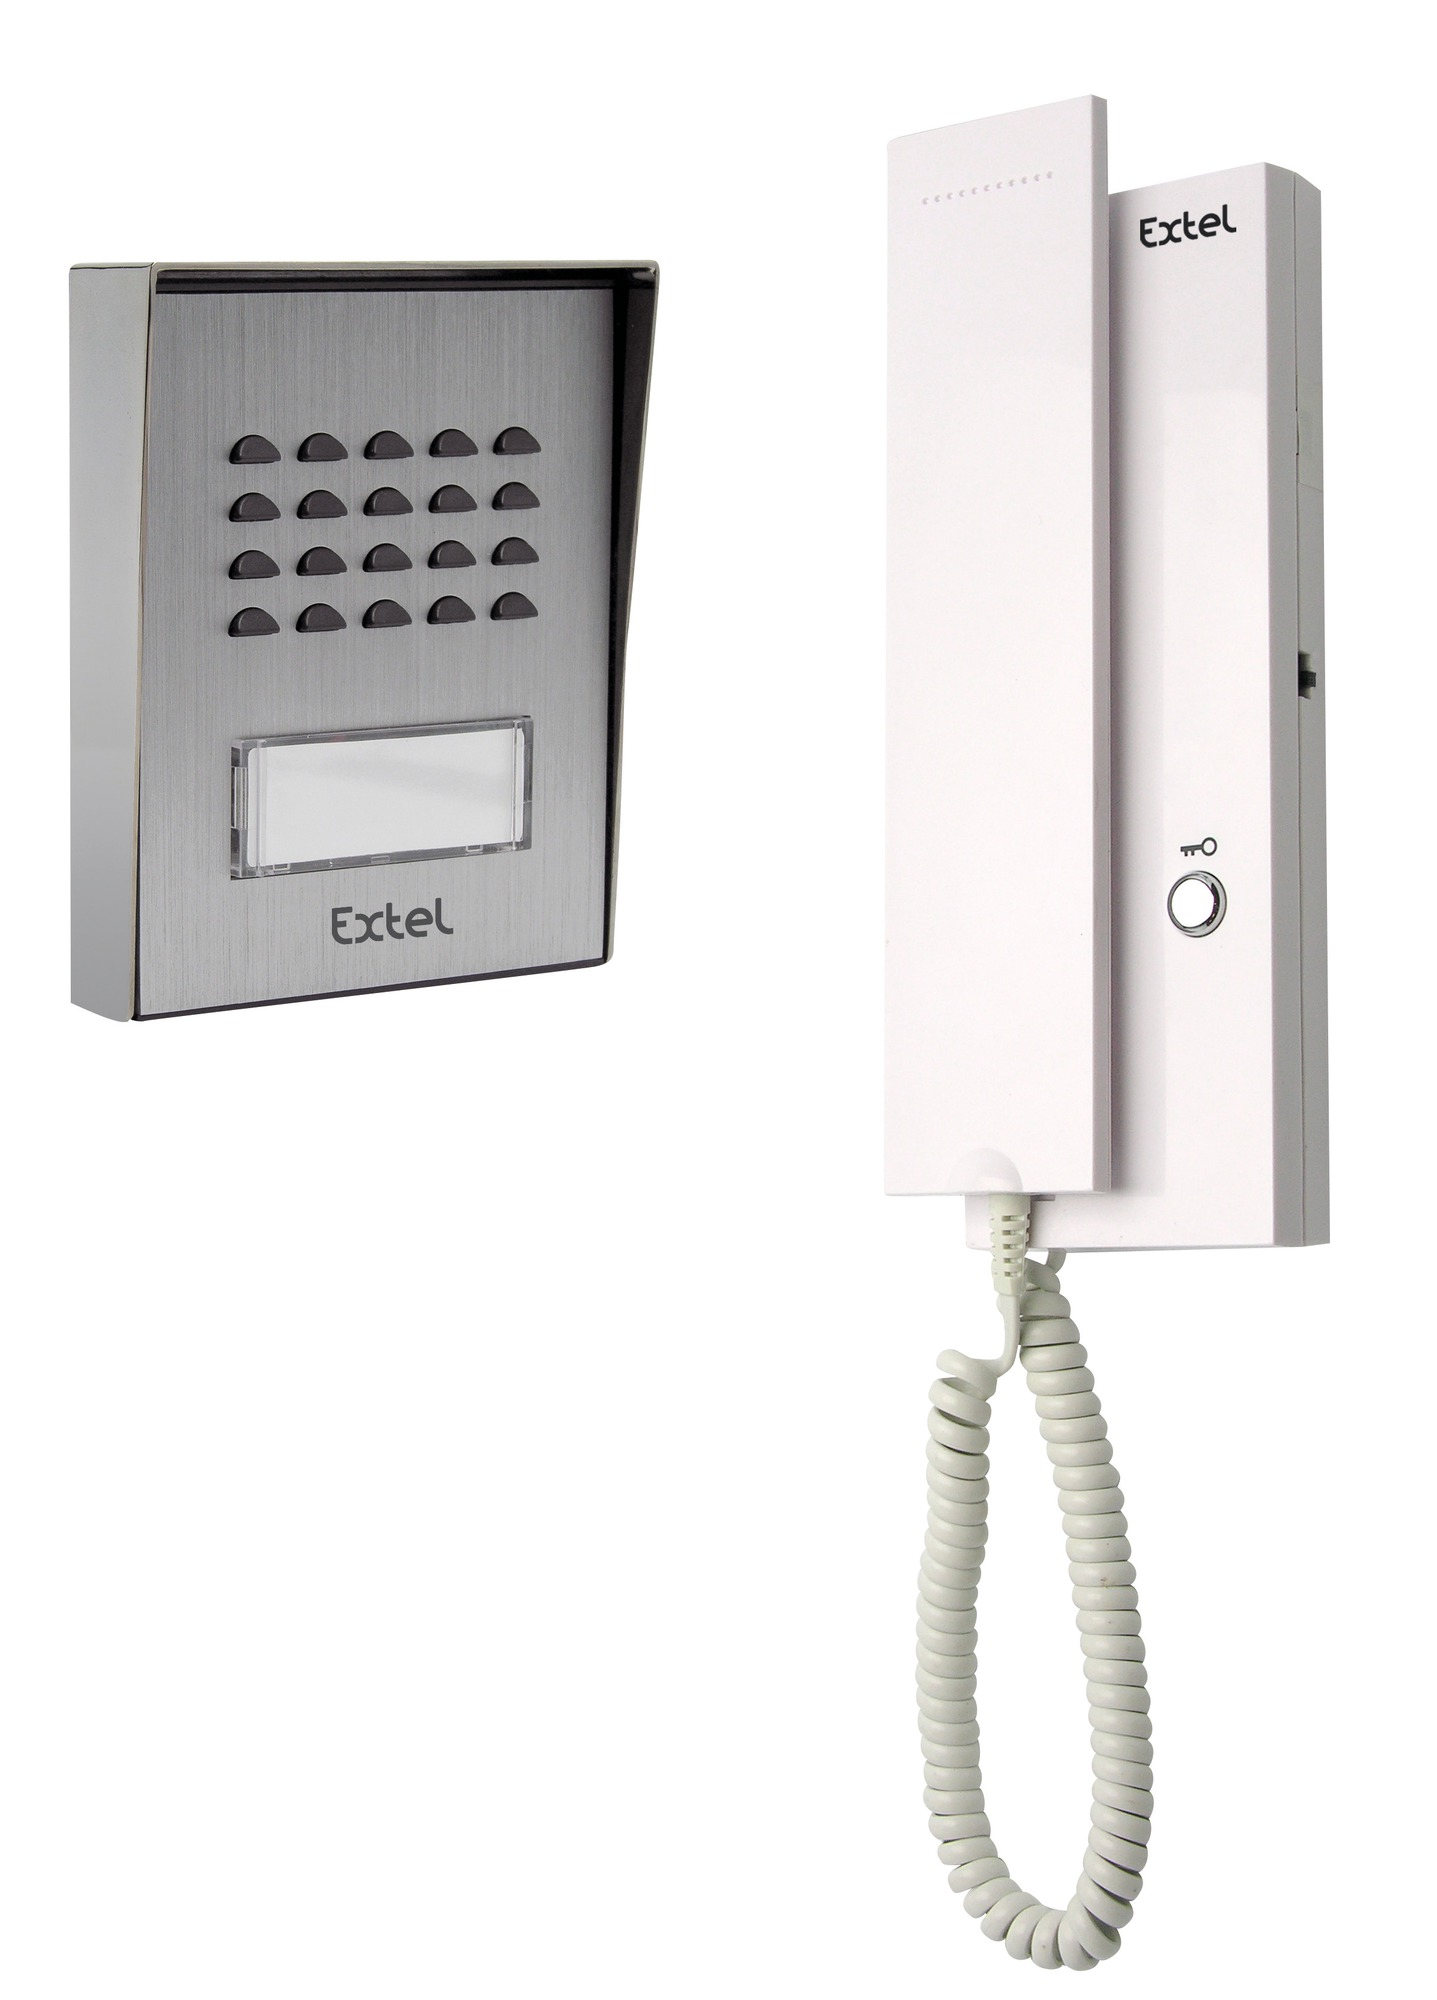 Interphone filaire Extel - 2 fils